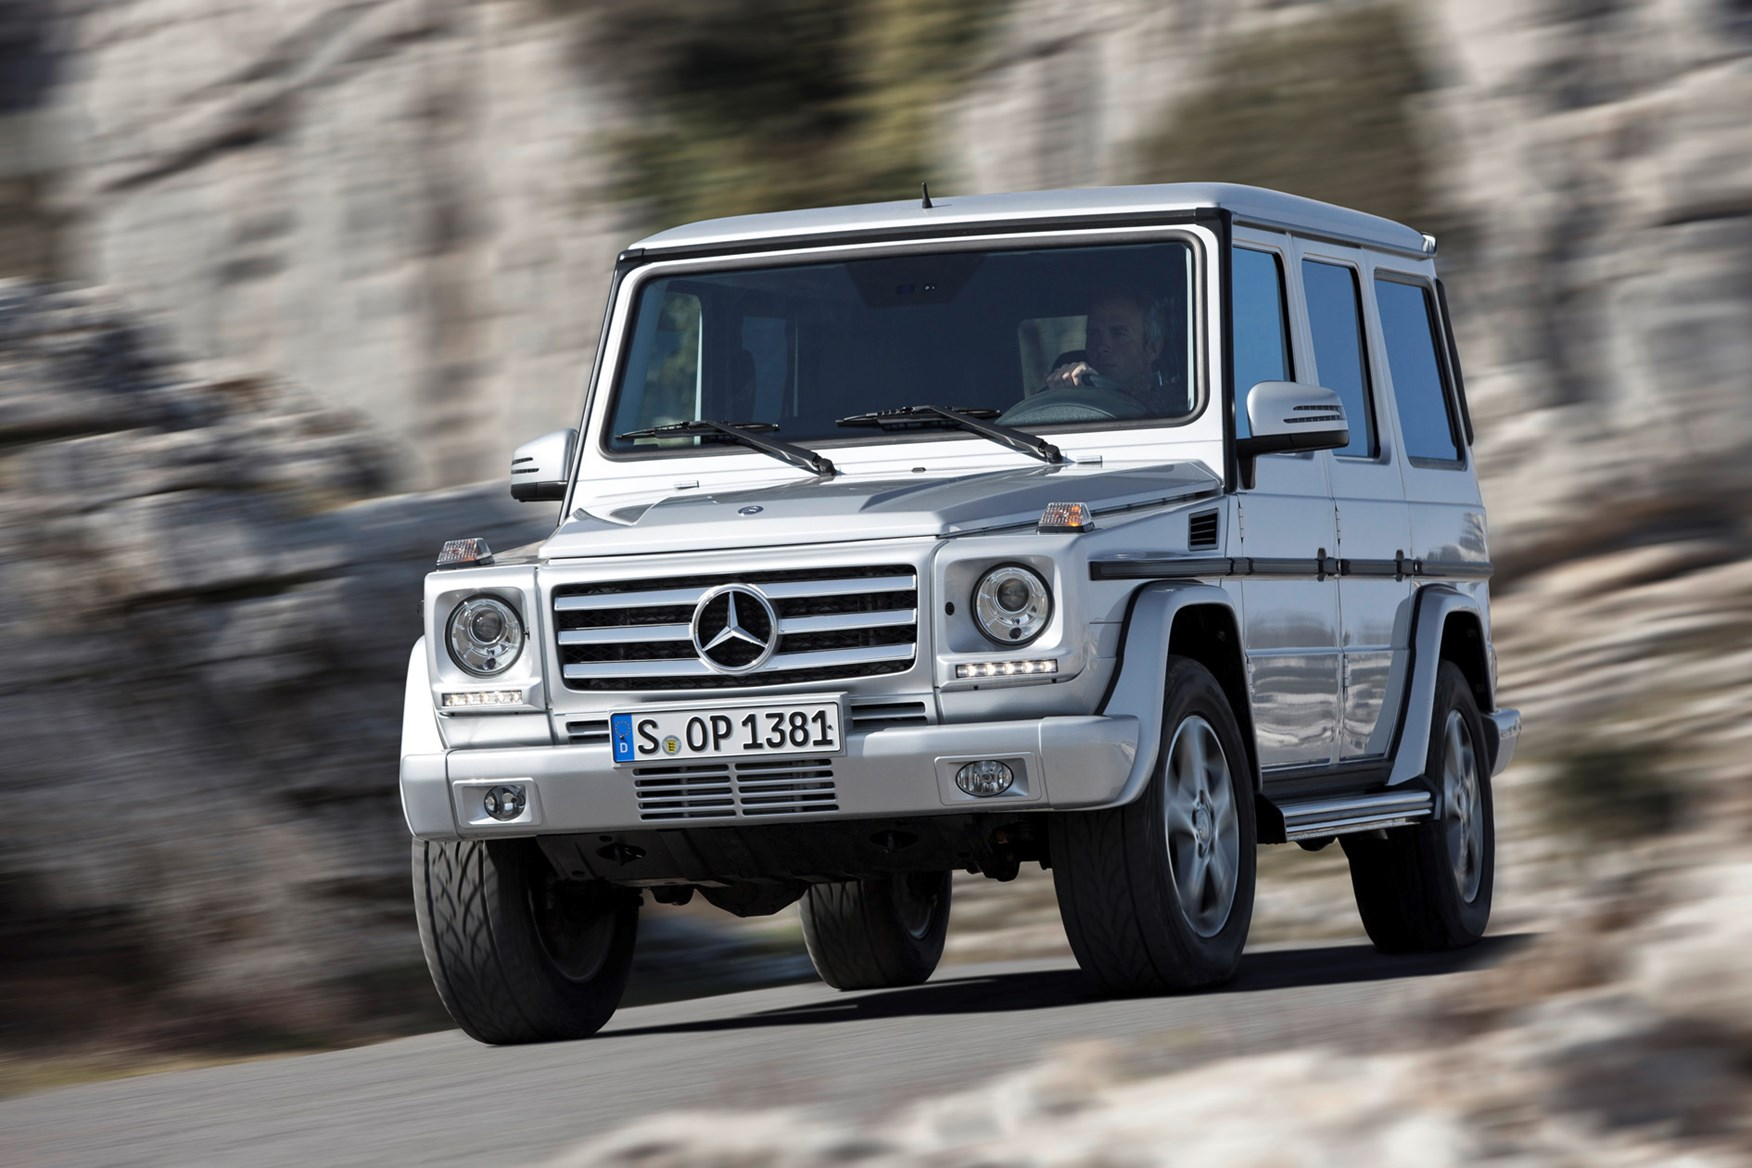 View all images of the mercedes benz g class